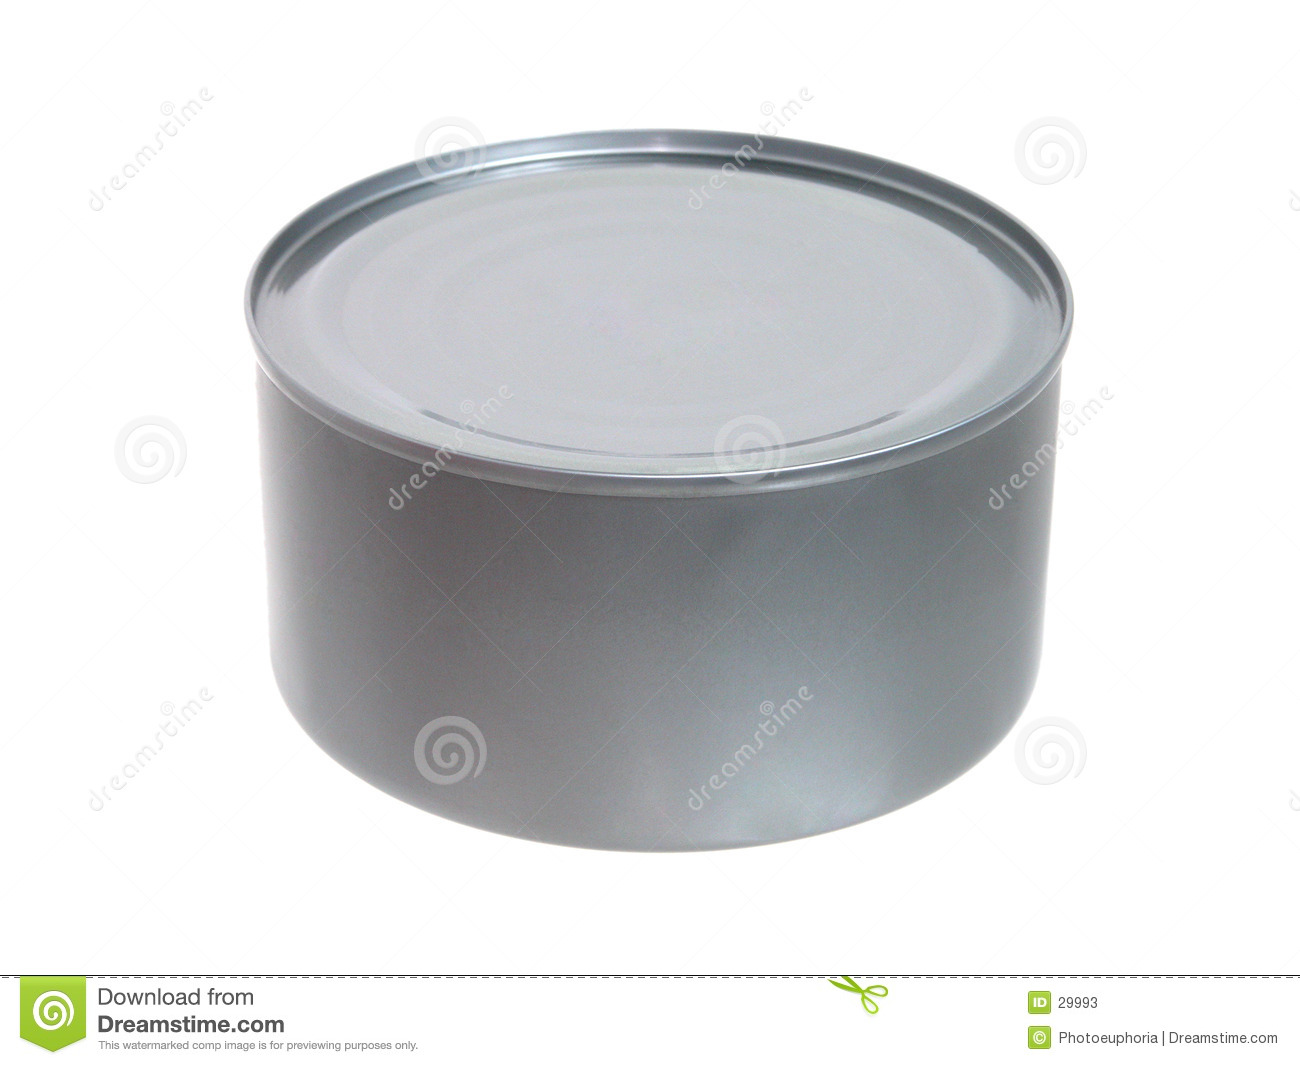 Food: Tuna in a Can Unopened